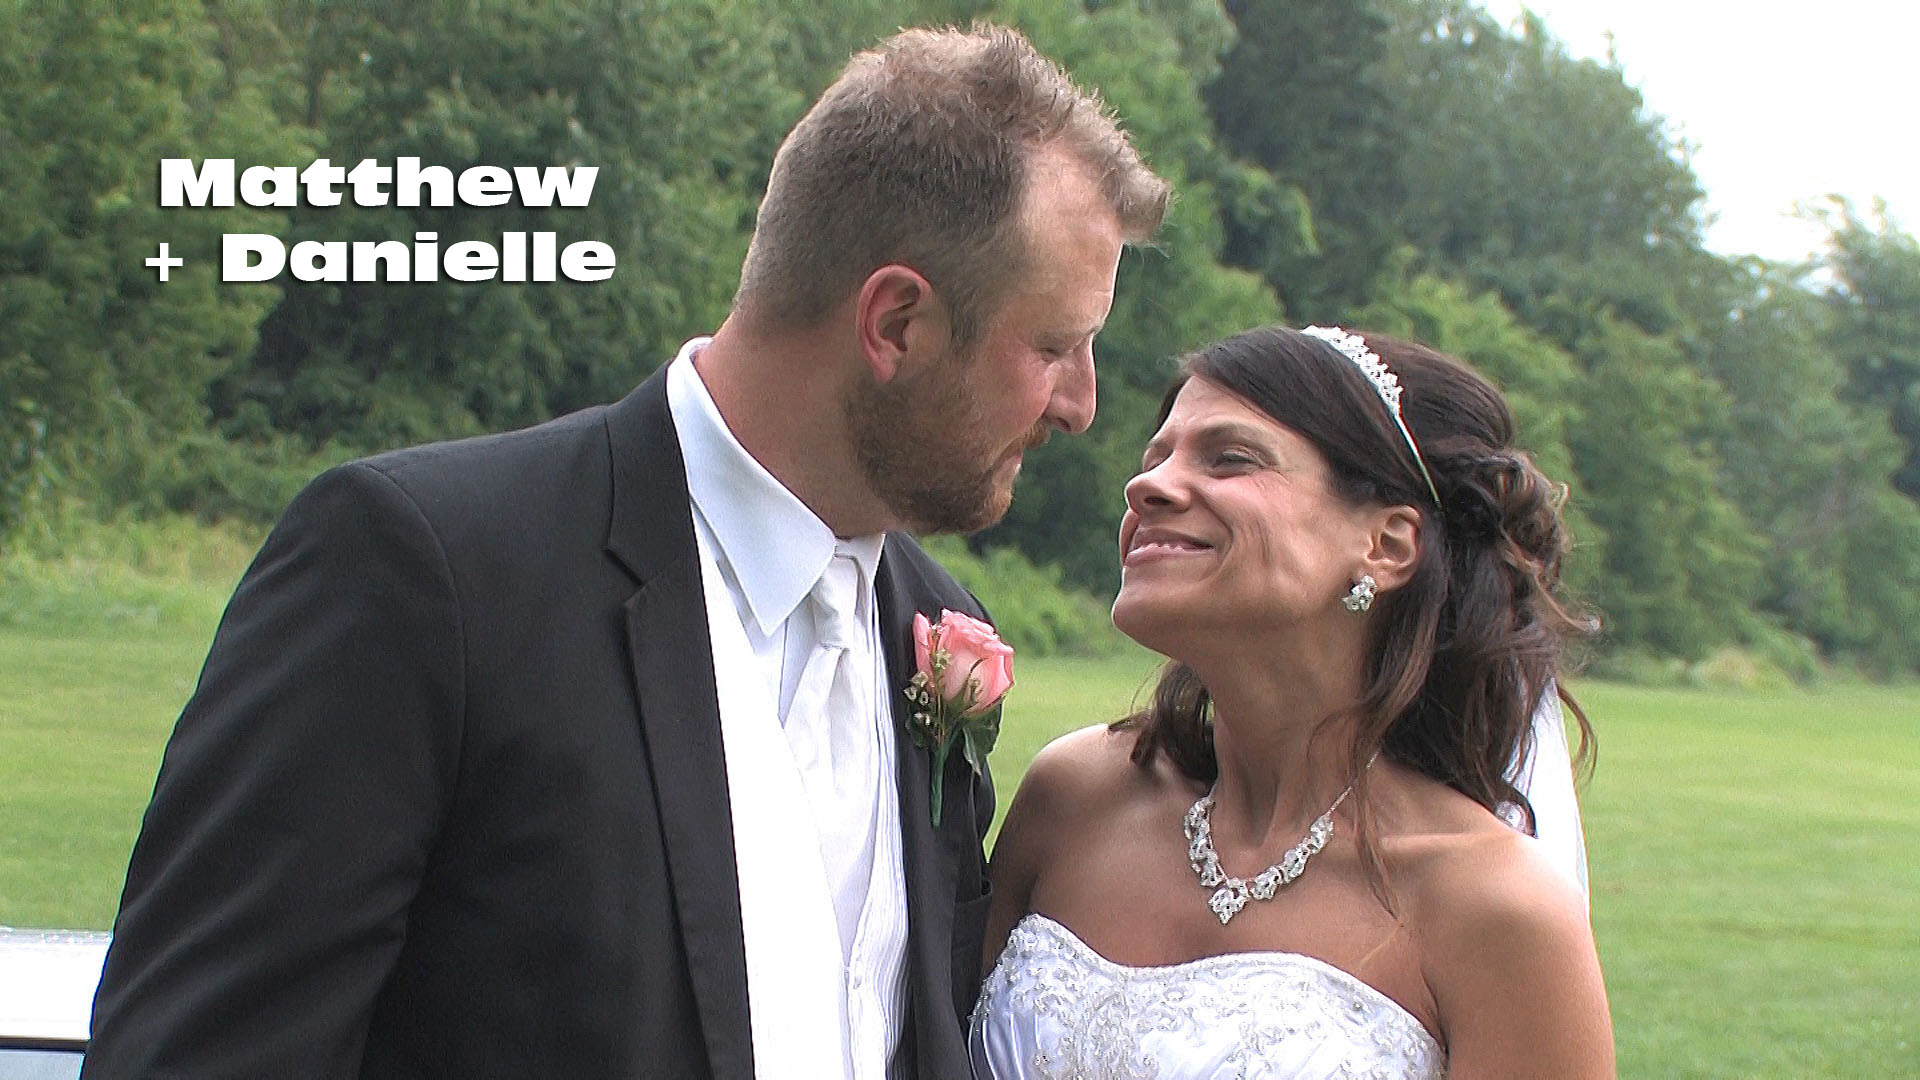 Matt & Danielle – Lockport Wedding Video